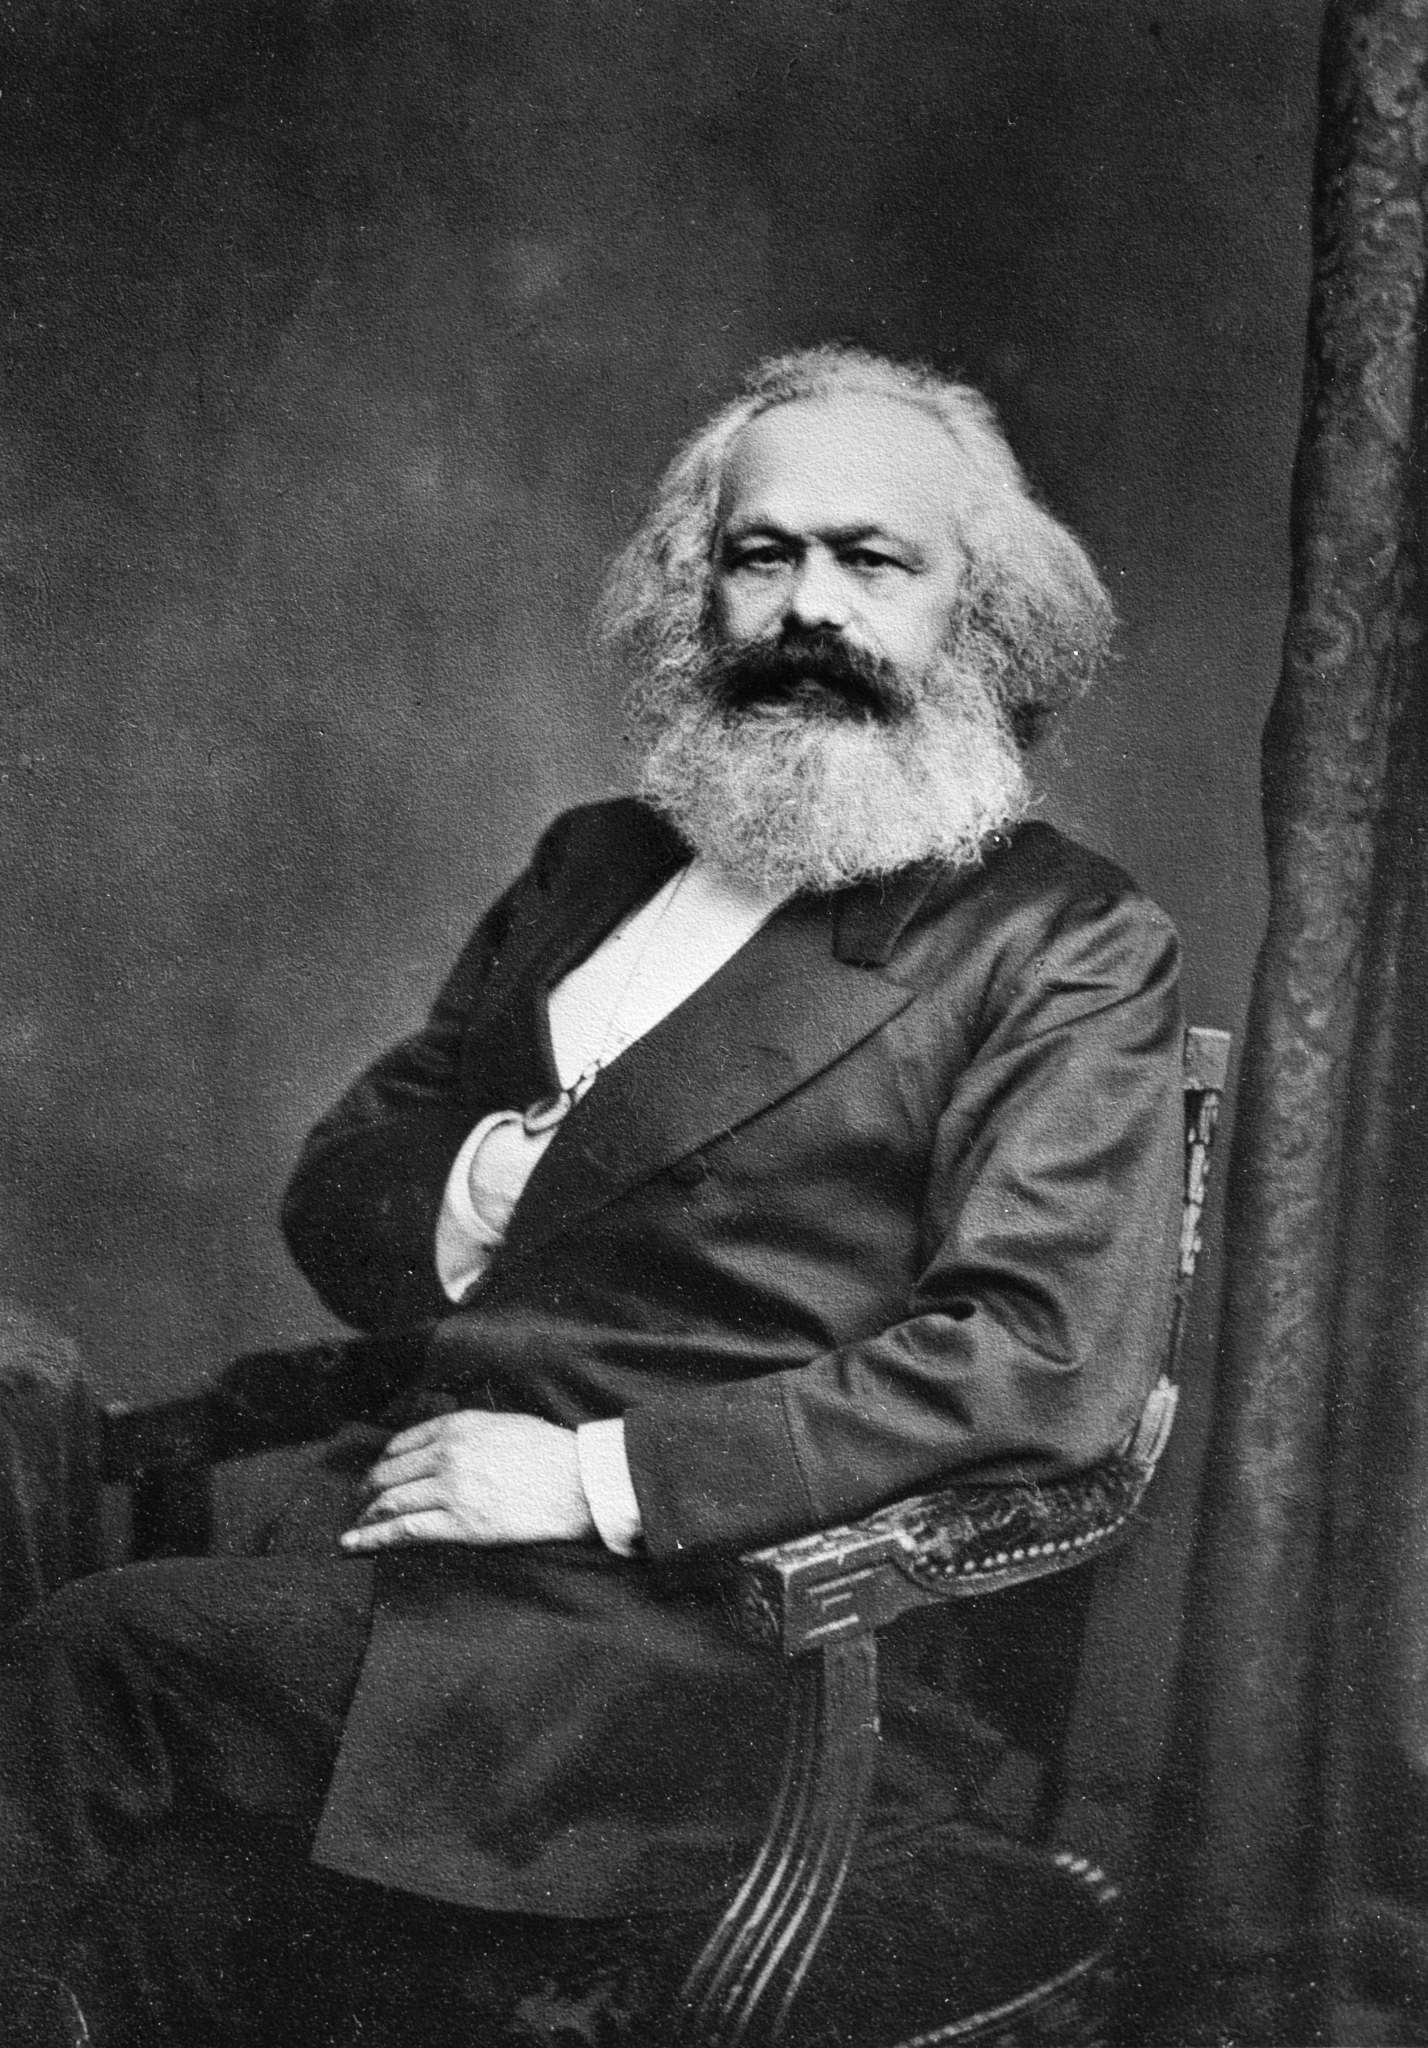 http://upload.wikimedia.org/wikipedia/commons/d/d4/Karl_Marx_001.jpg